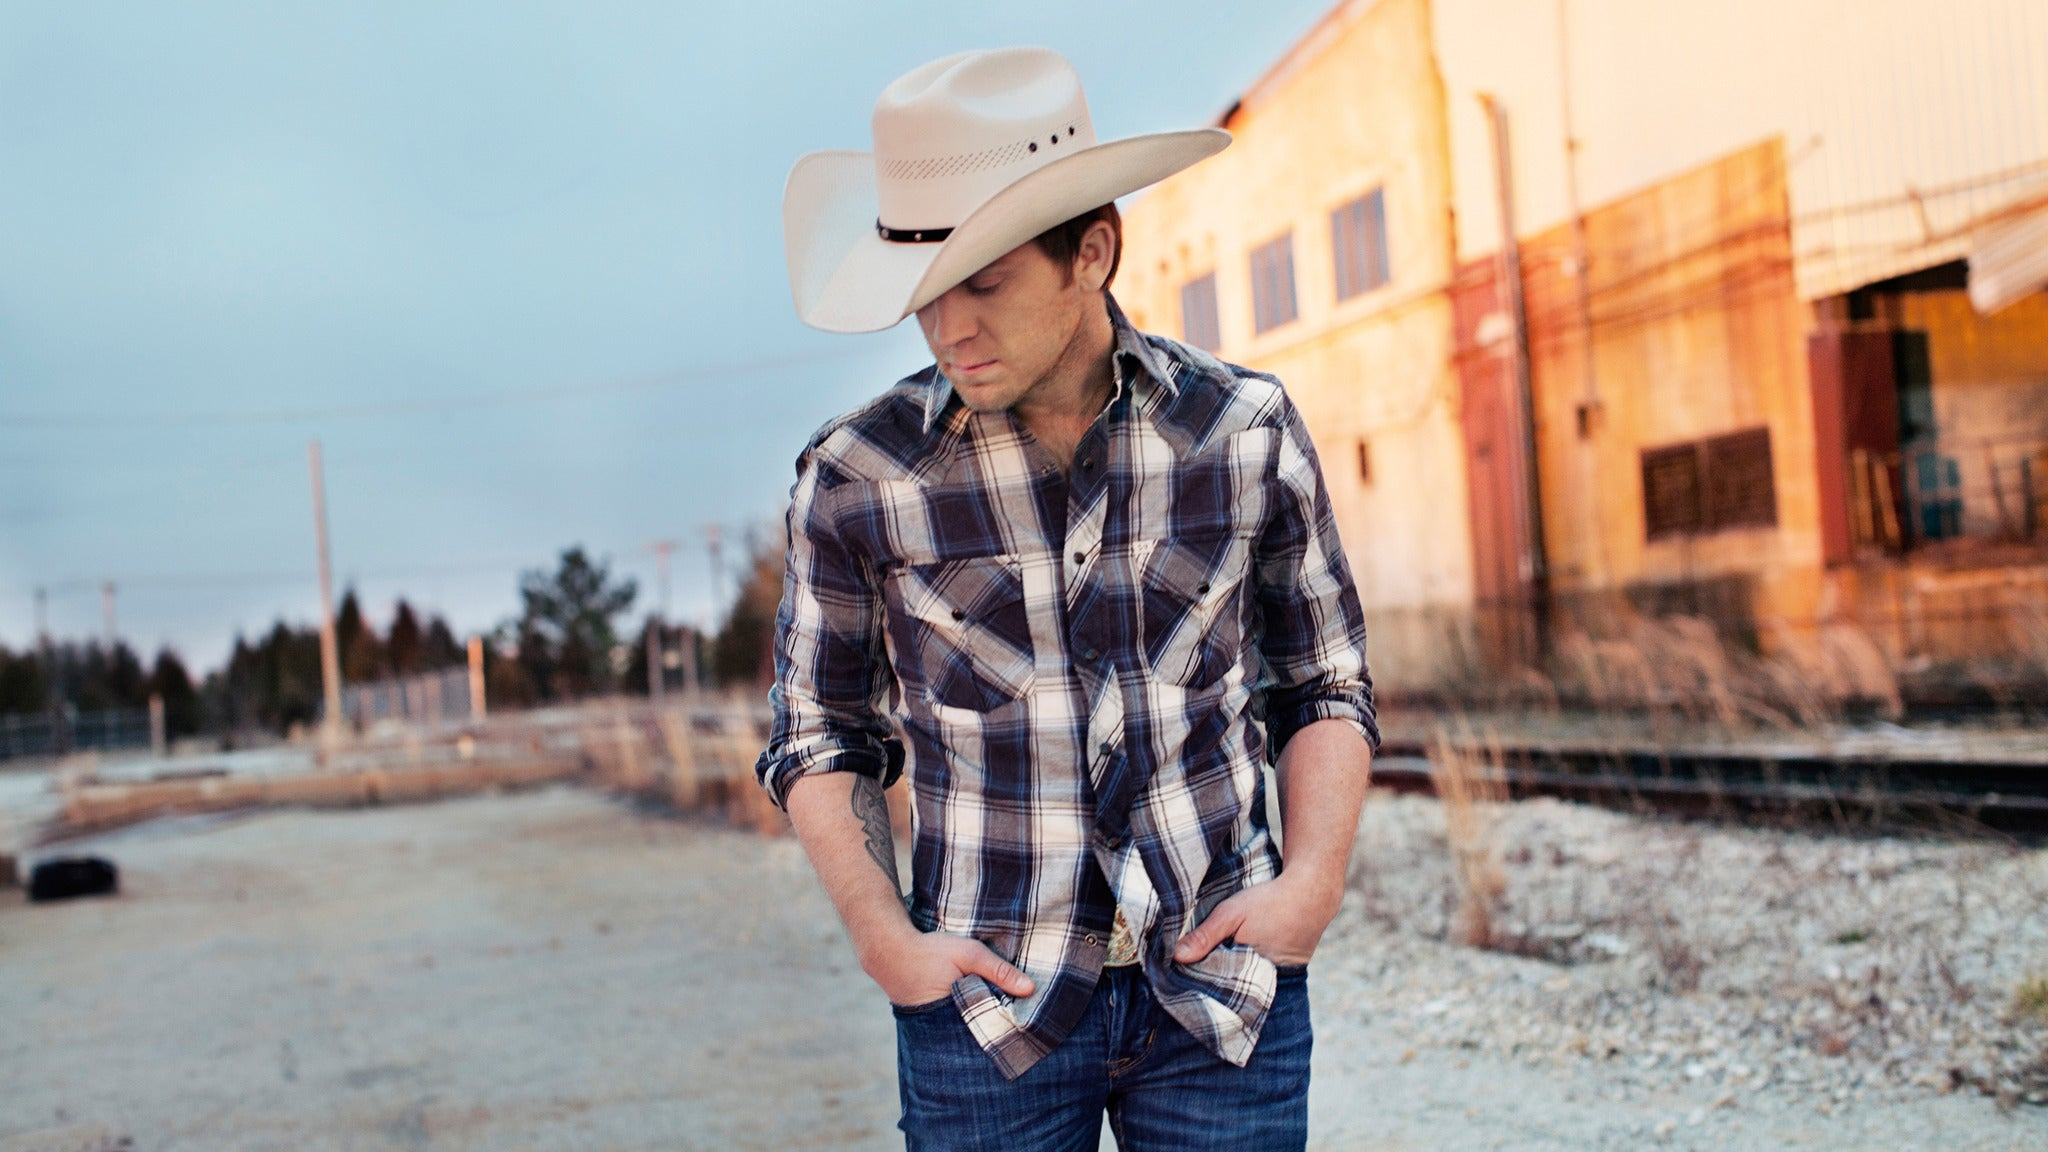 Justin Moore at United Wireless Arena